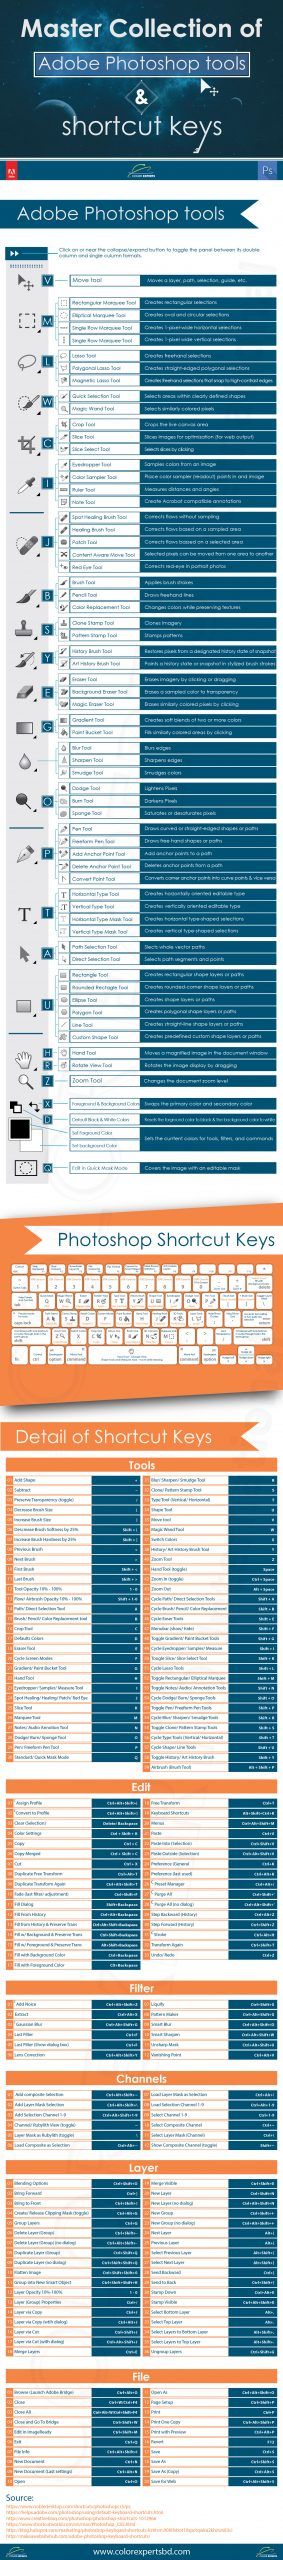 Master Collection of Adobe Photoshop tools & shortcut keys